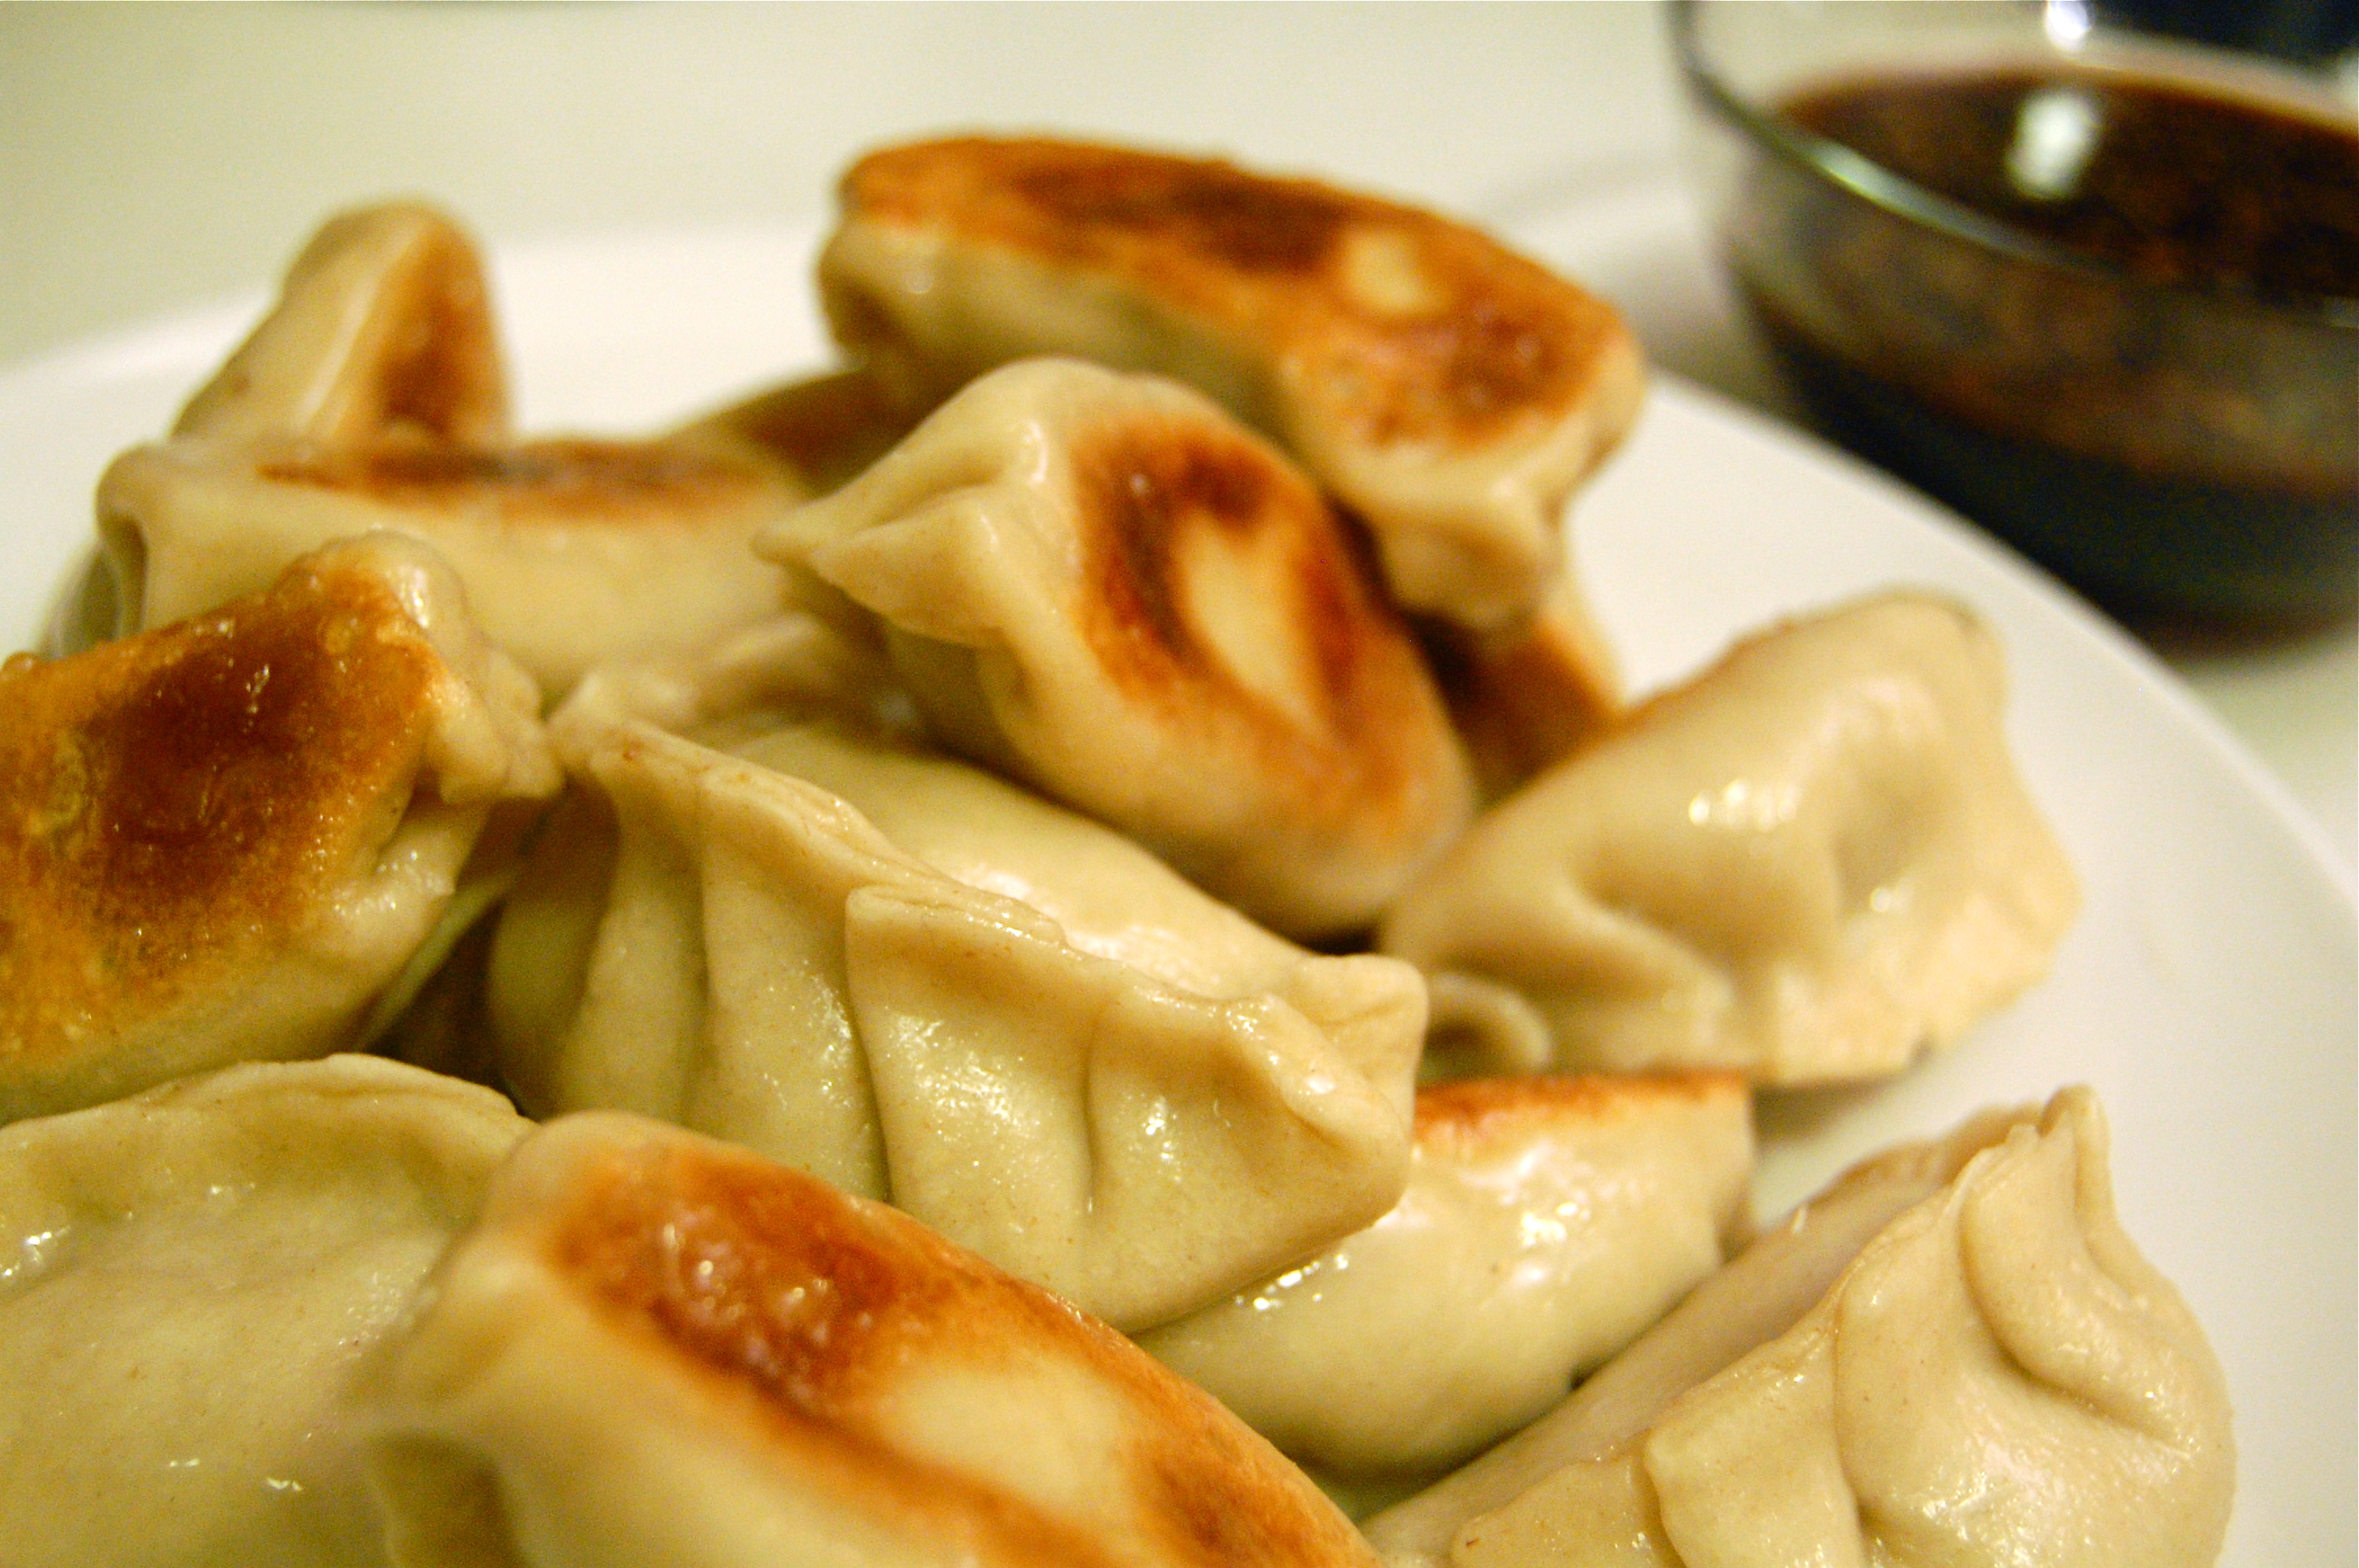 ... pot stickers pork and shrimp pot stickers meat and chinese chive pot